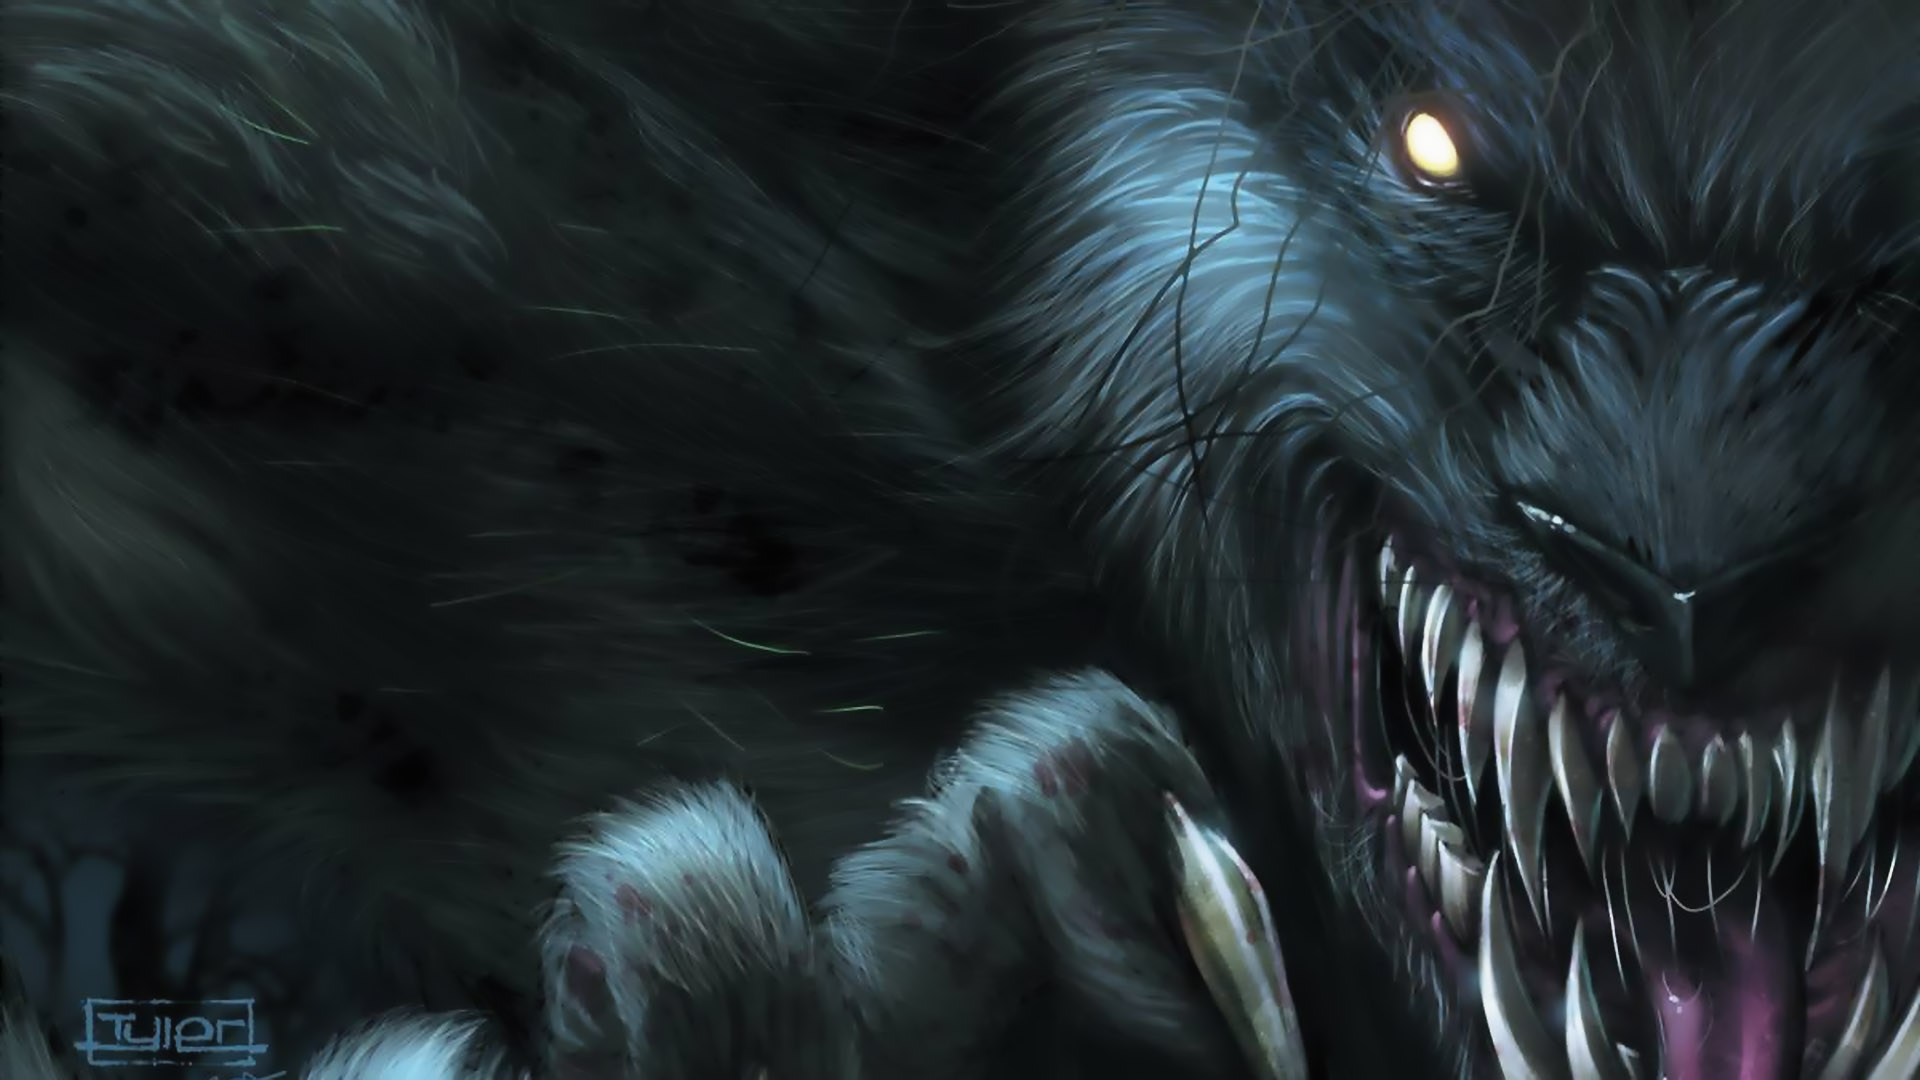 Grimm Fairy Tales Werewolves Full HD Wallpaper And Background Image